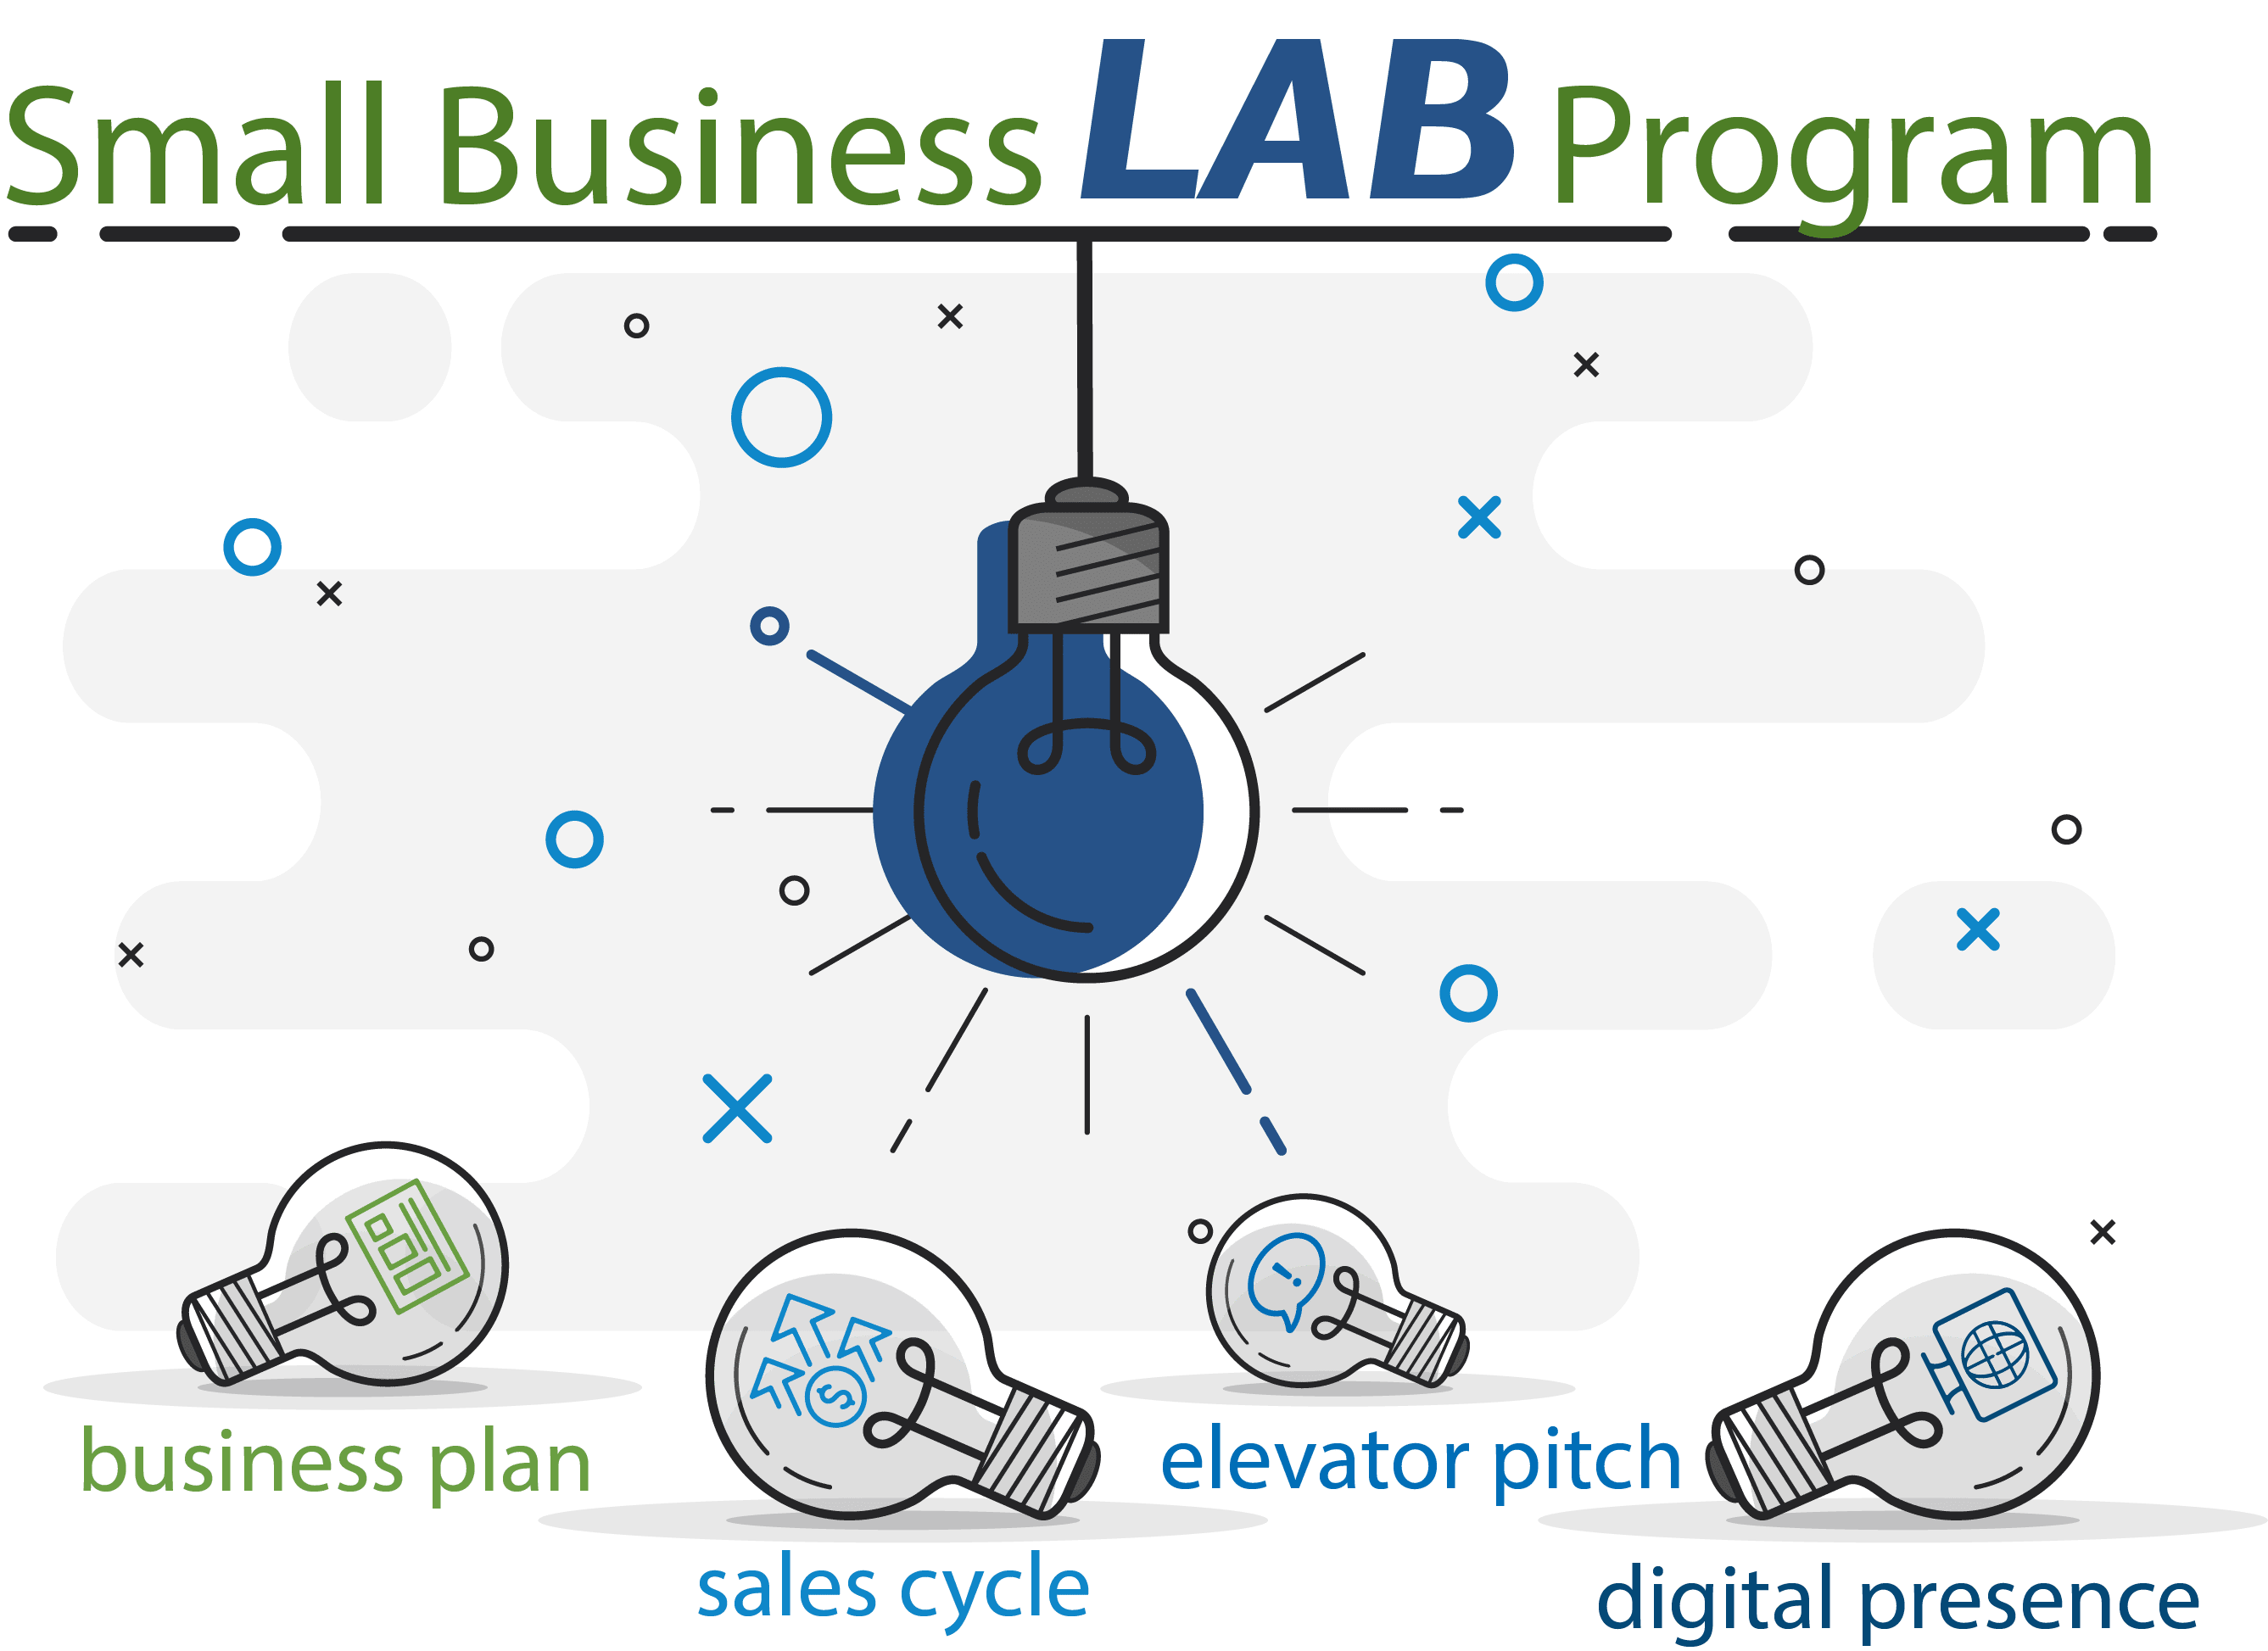 Small Business Lab Program - icons with lightbulbs